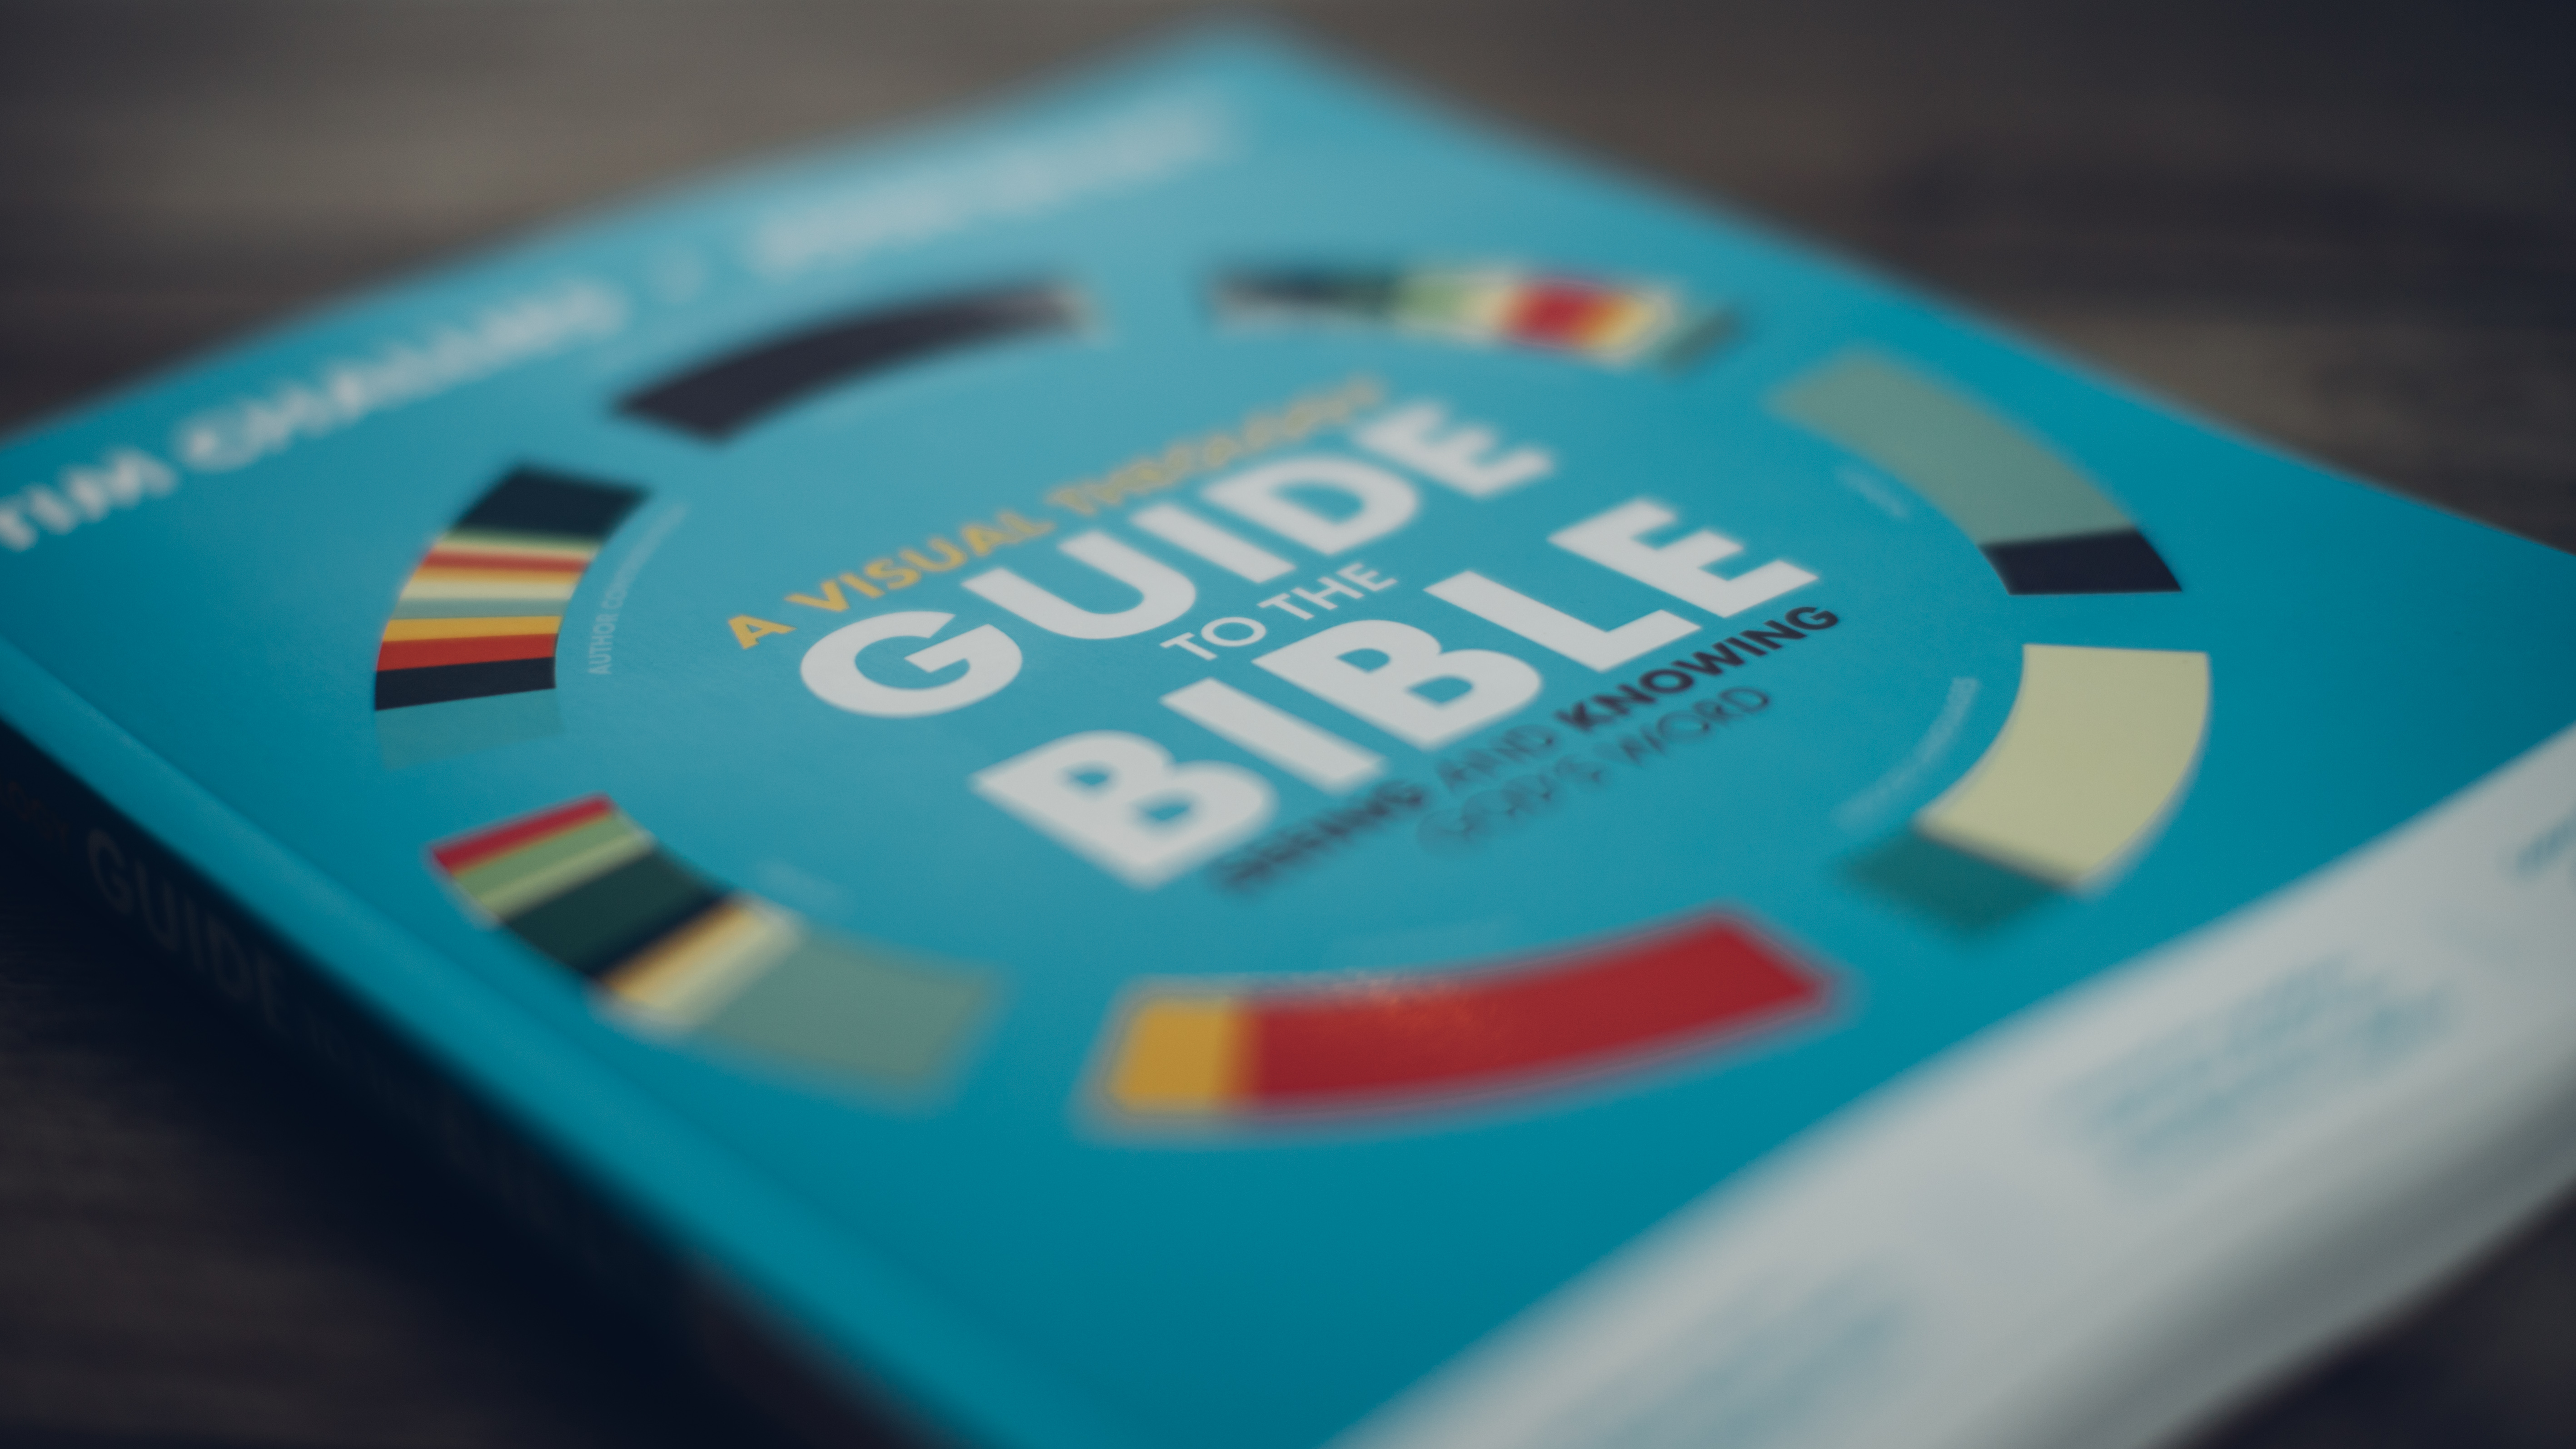 Now Available: A Visual Theology Guide to the Bible